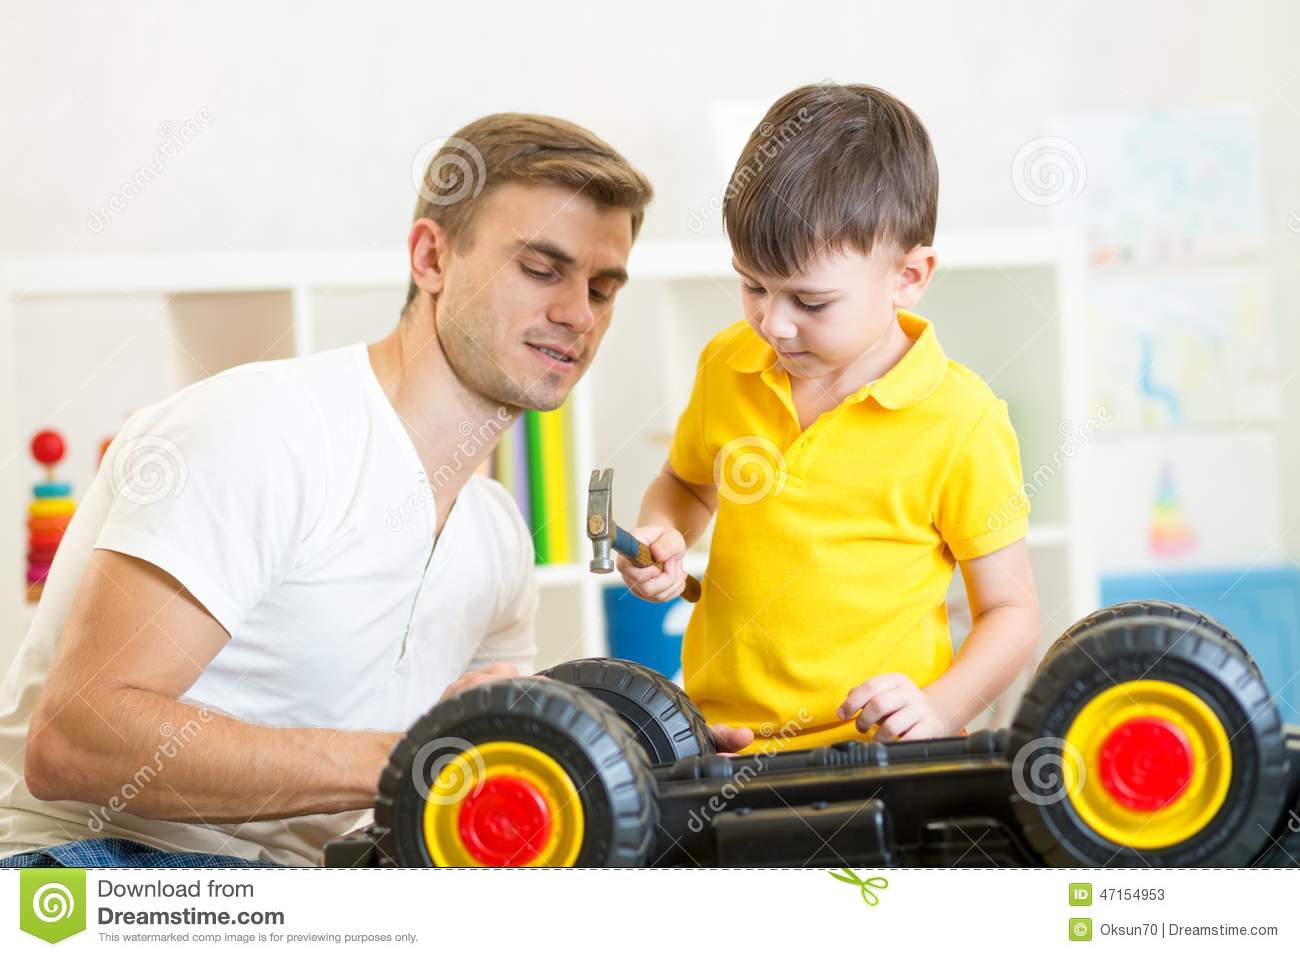 Boy Toys For Dads : Kid boy and his dad repair toy car stock photo image